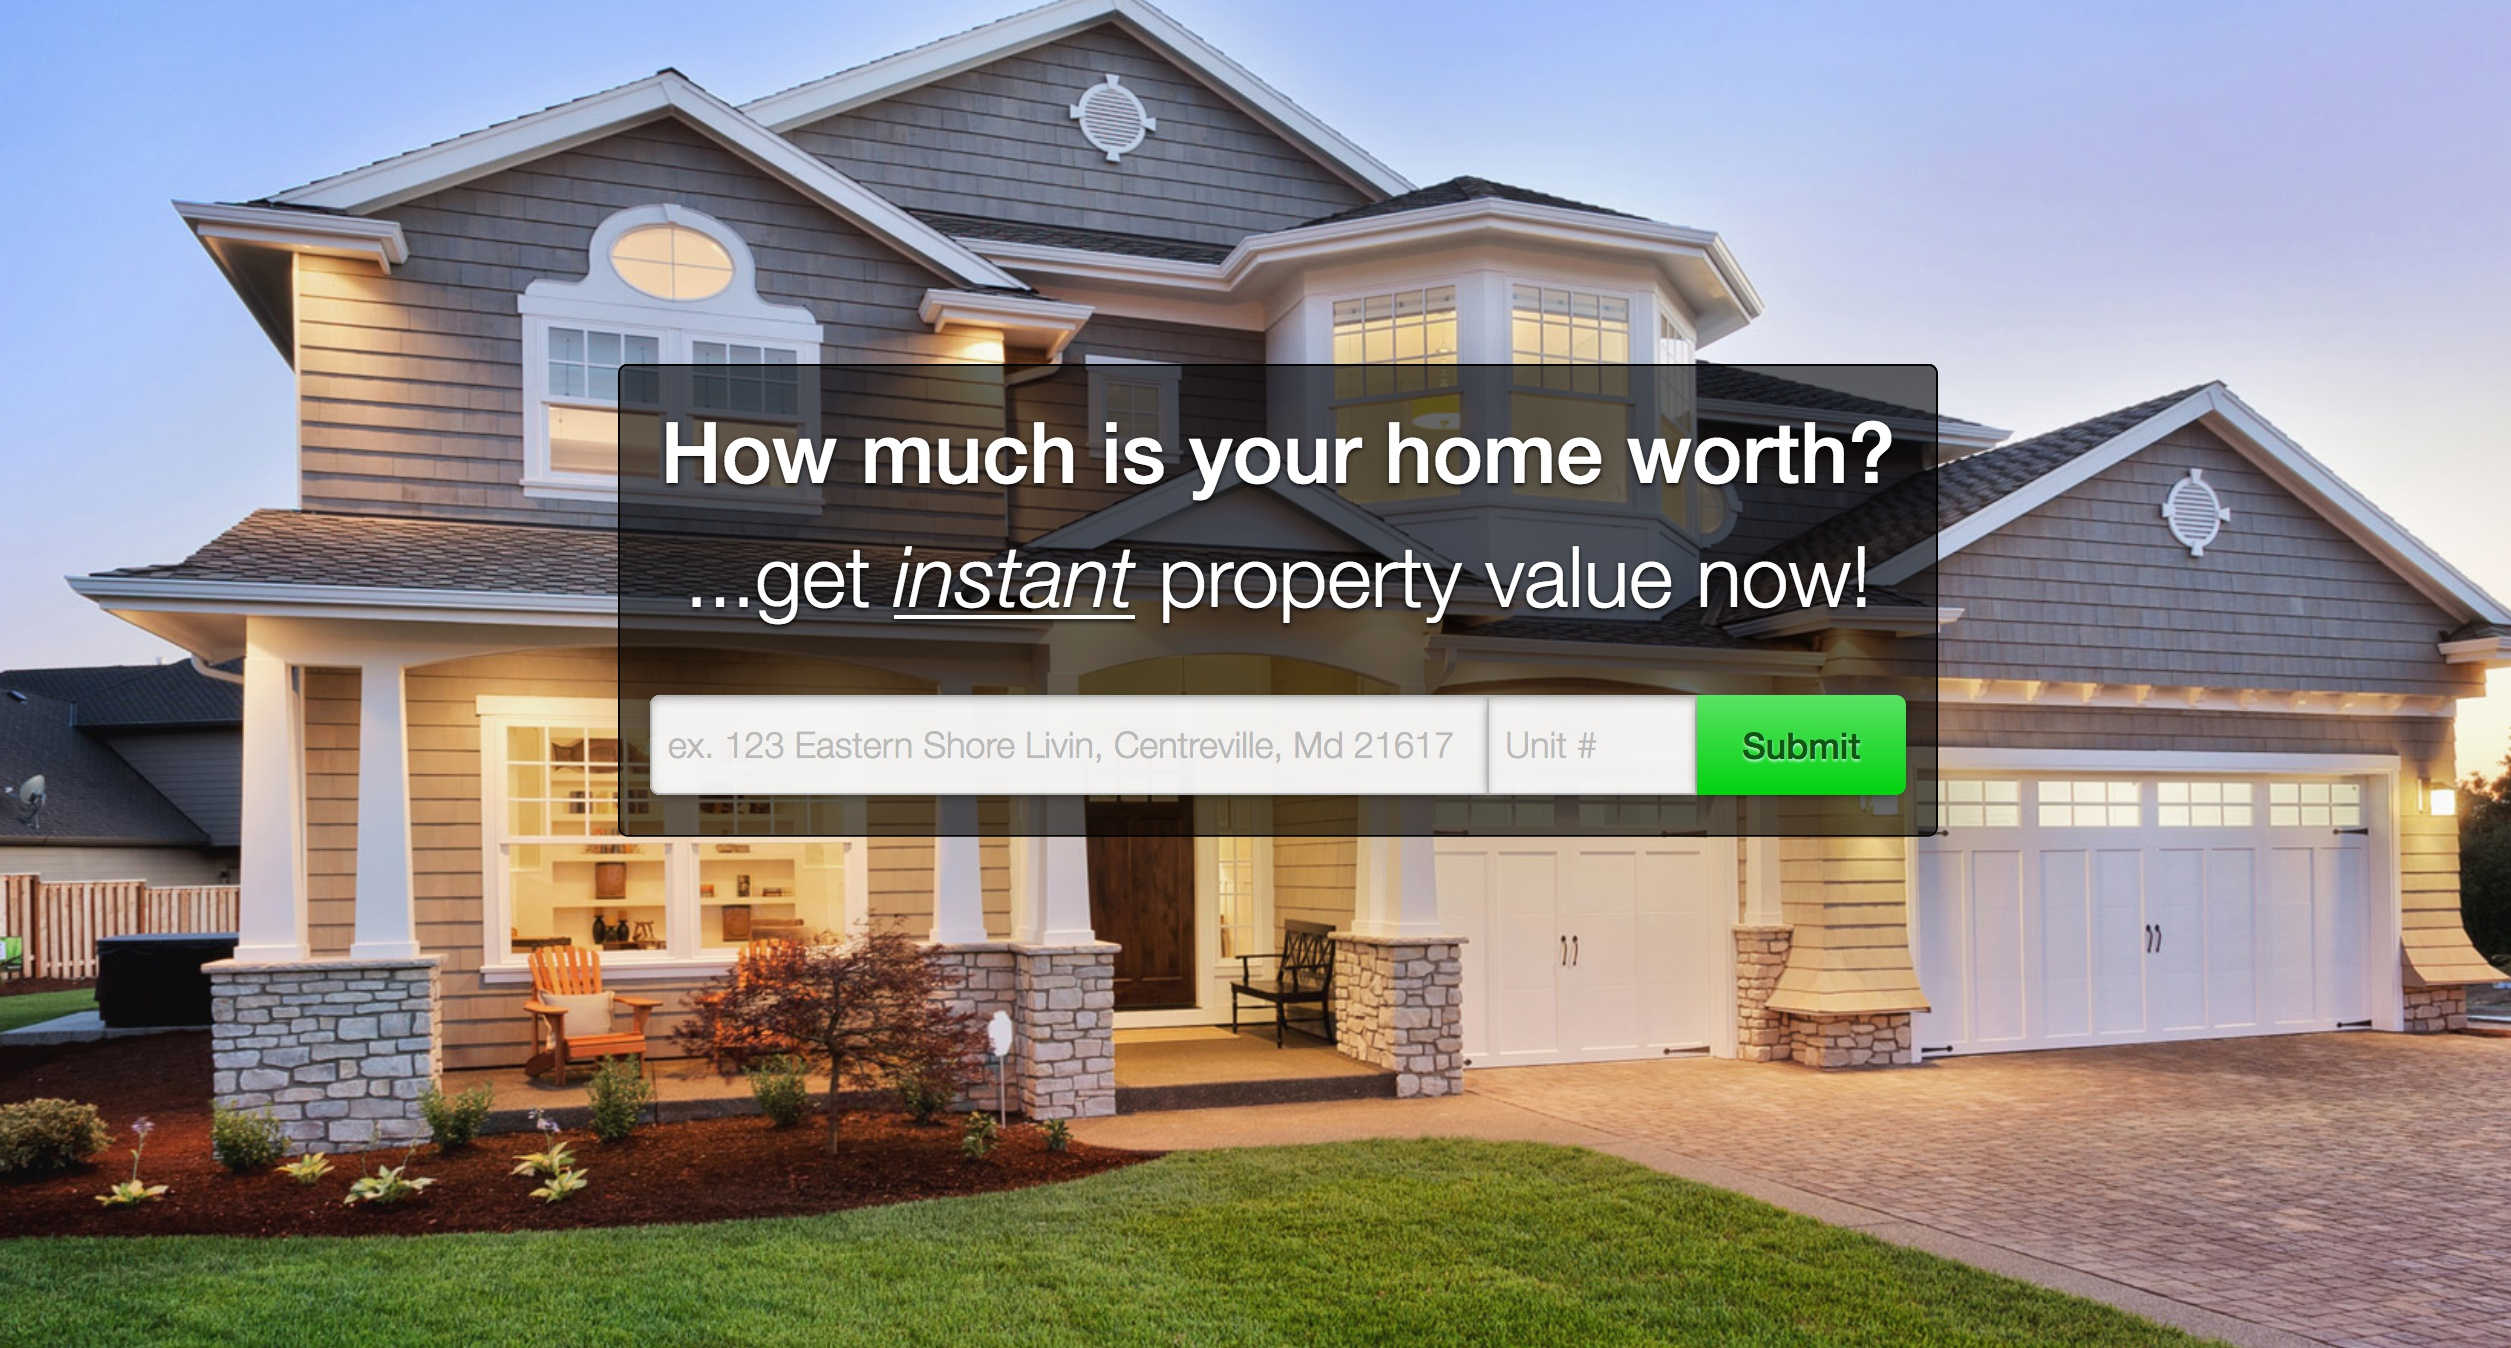 Home values for people wanting to sell their home.